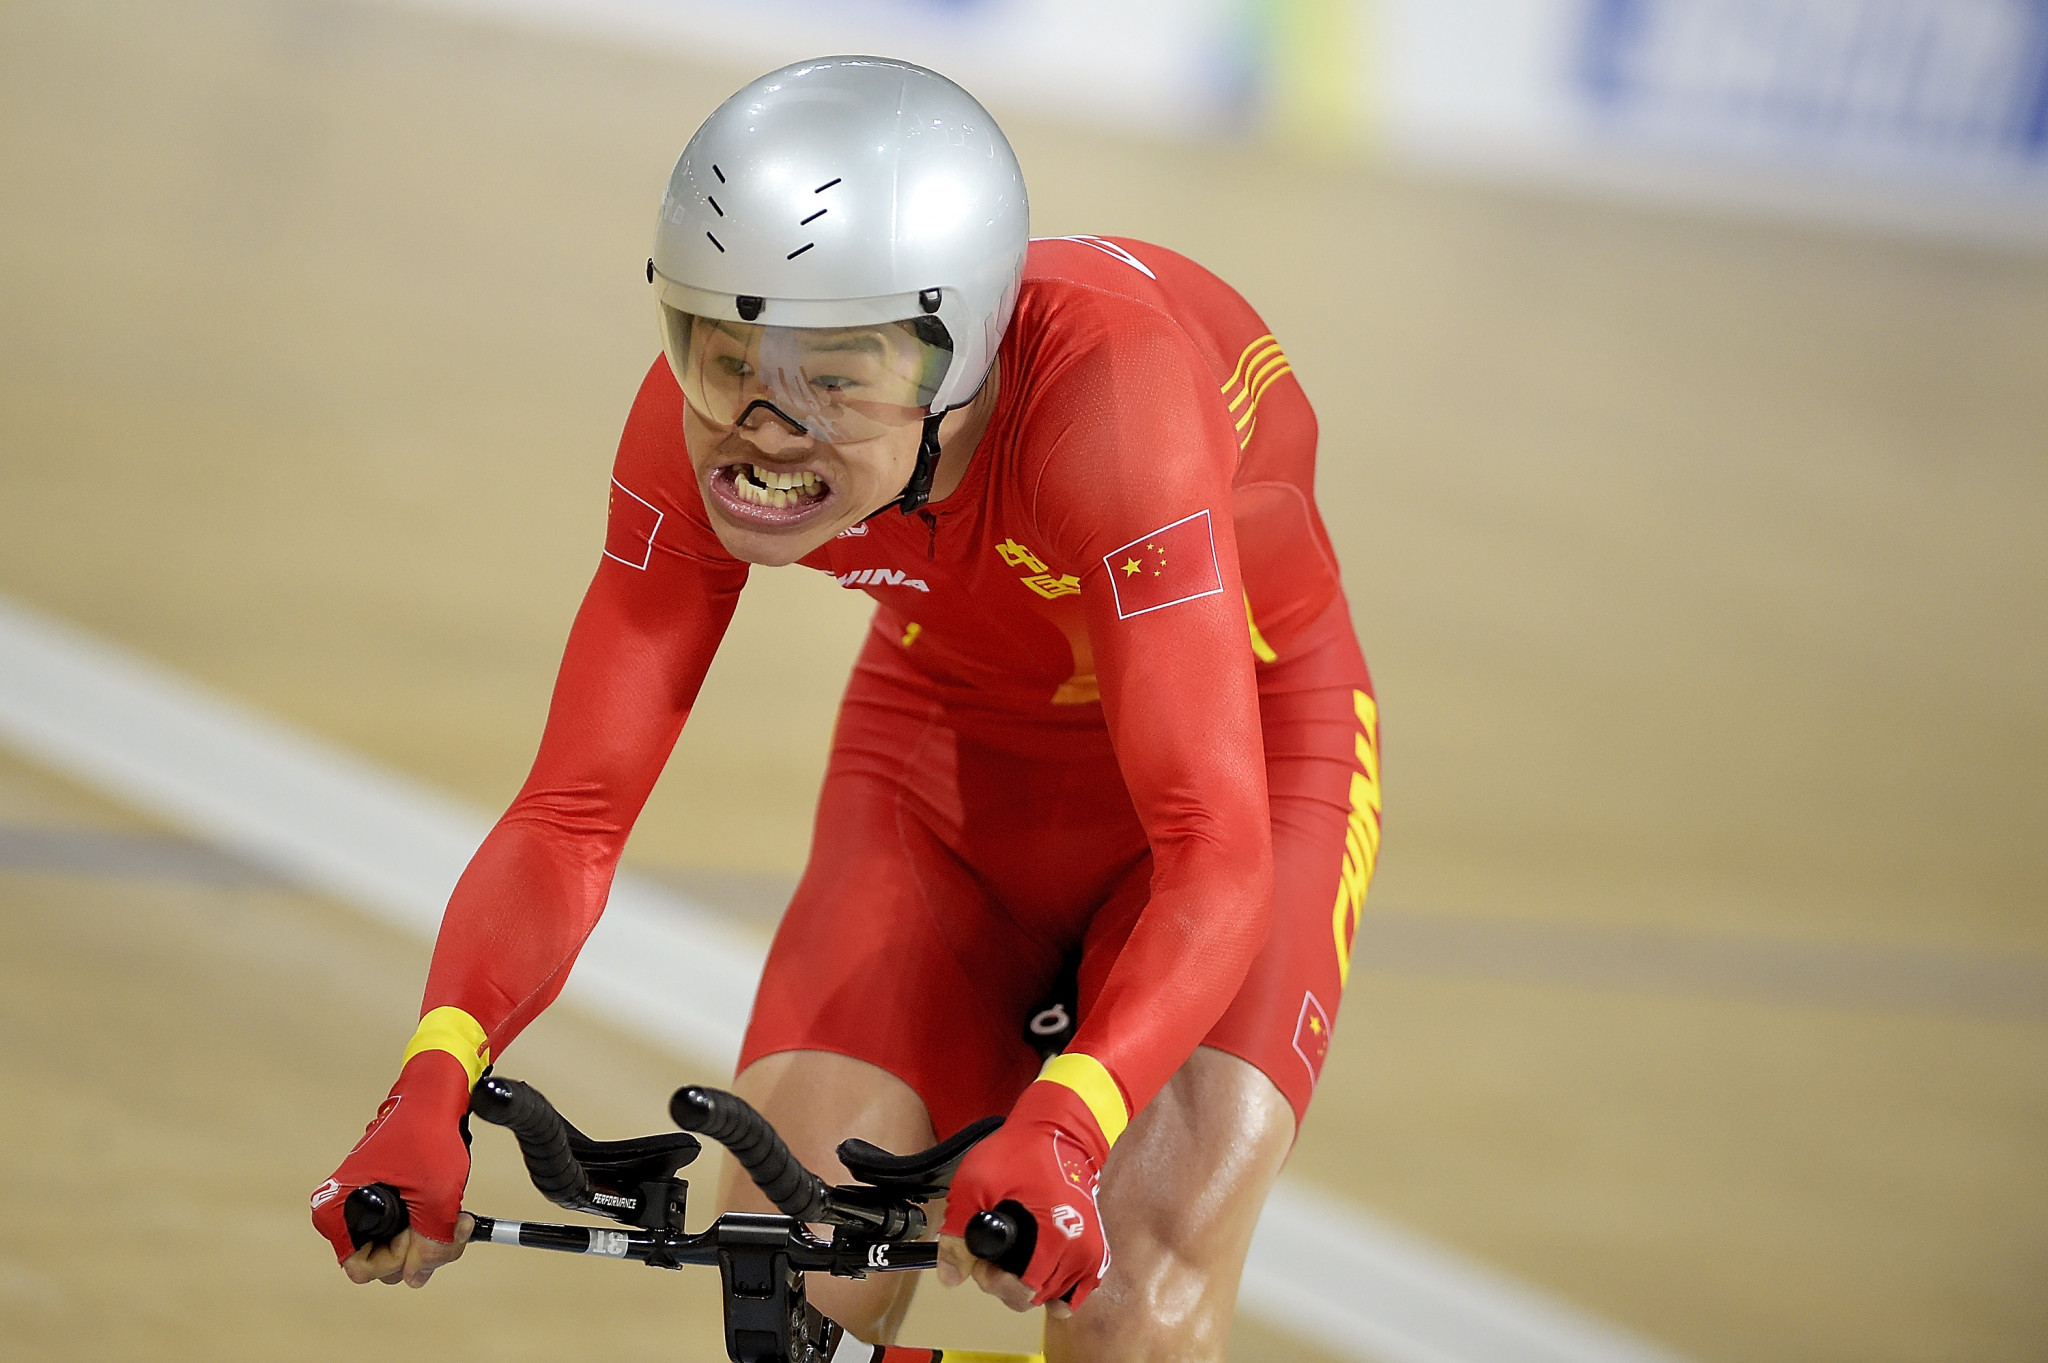 Zhangyu Li was one of two Chinese riders to win gold medals on day two of the UCI Para-cycling Track World Championships ©Getty Images